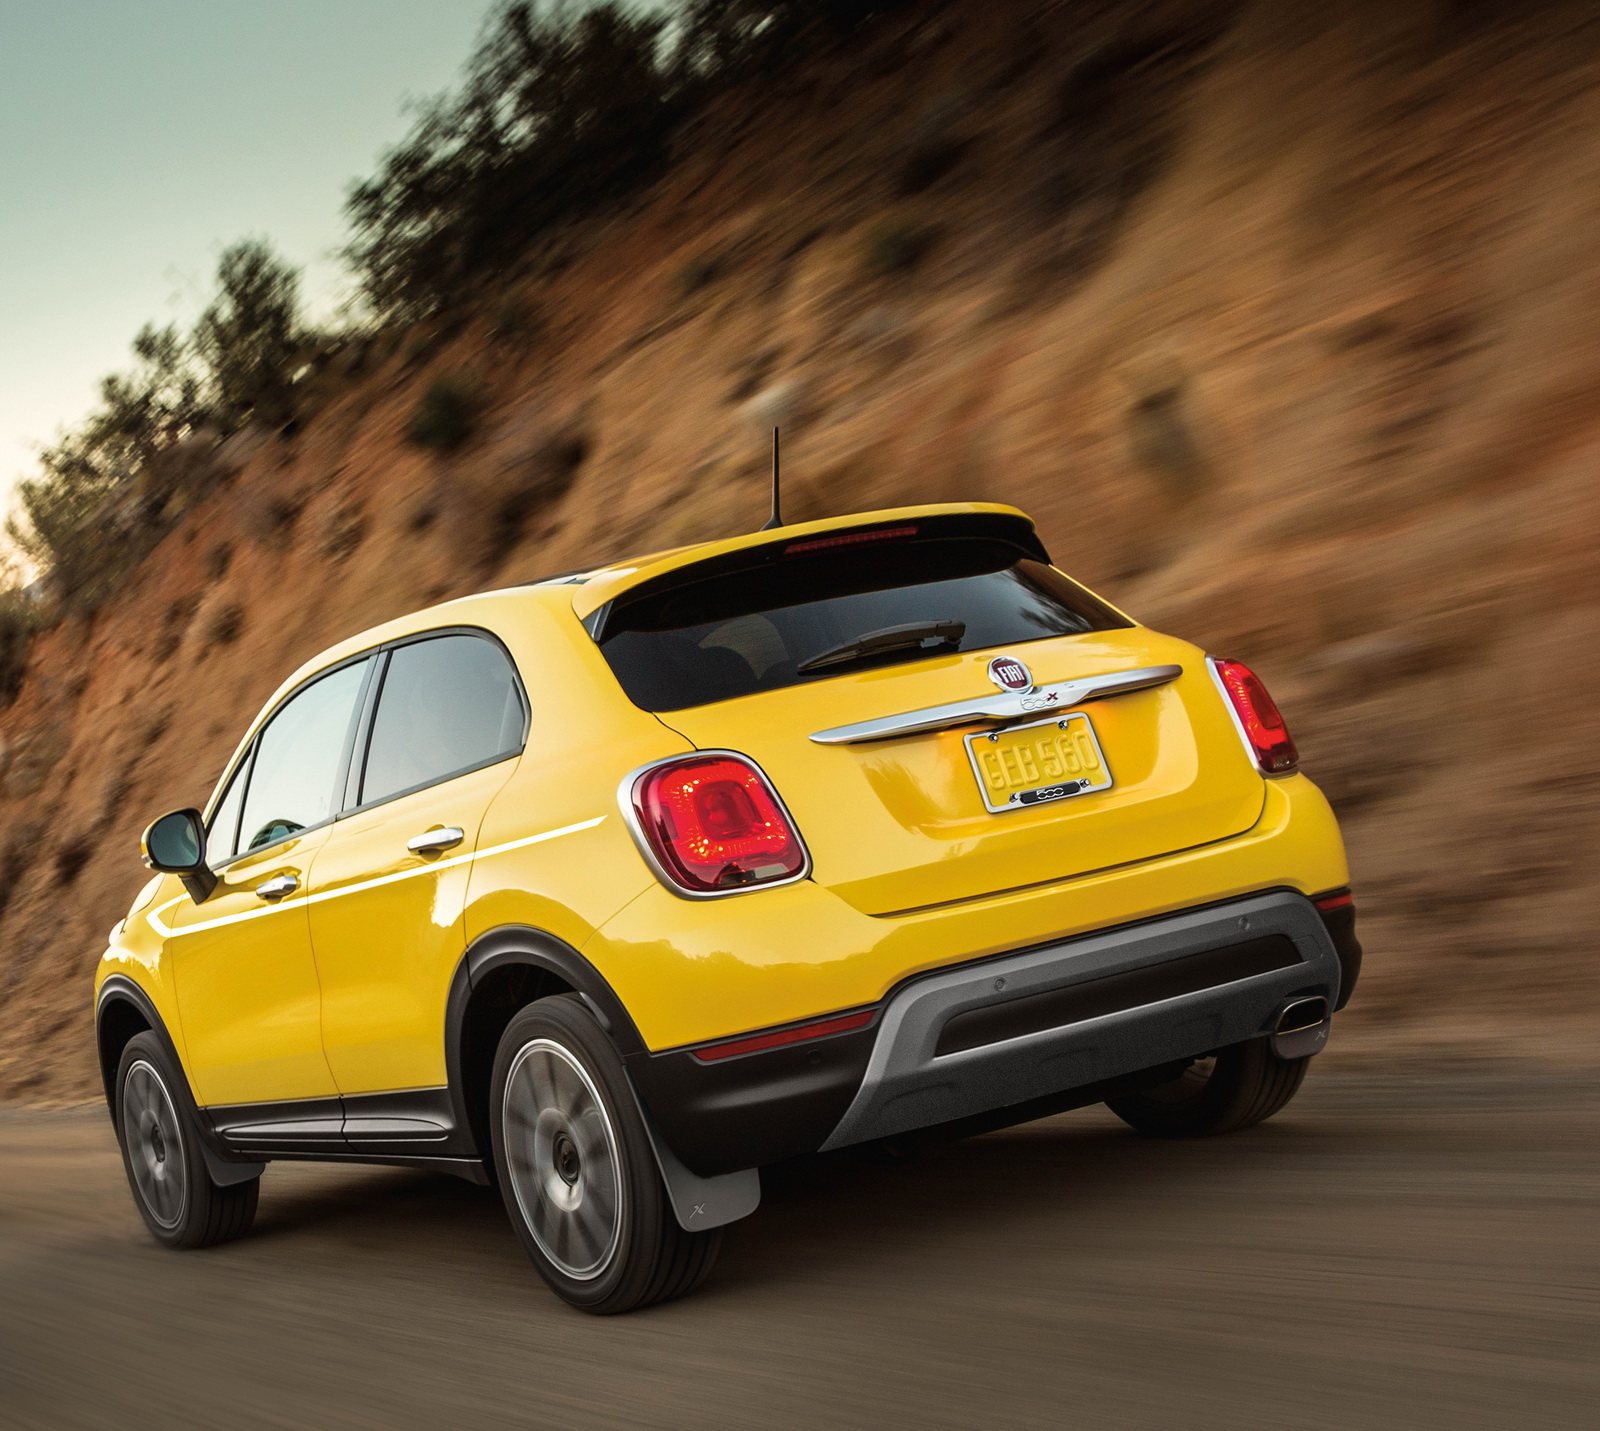 Mopar Prices Its Fiat 500x Accessories For The United